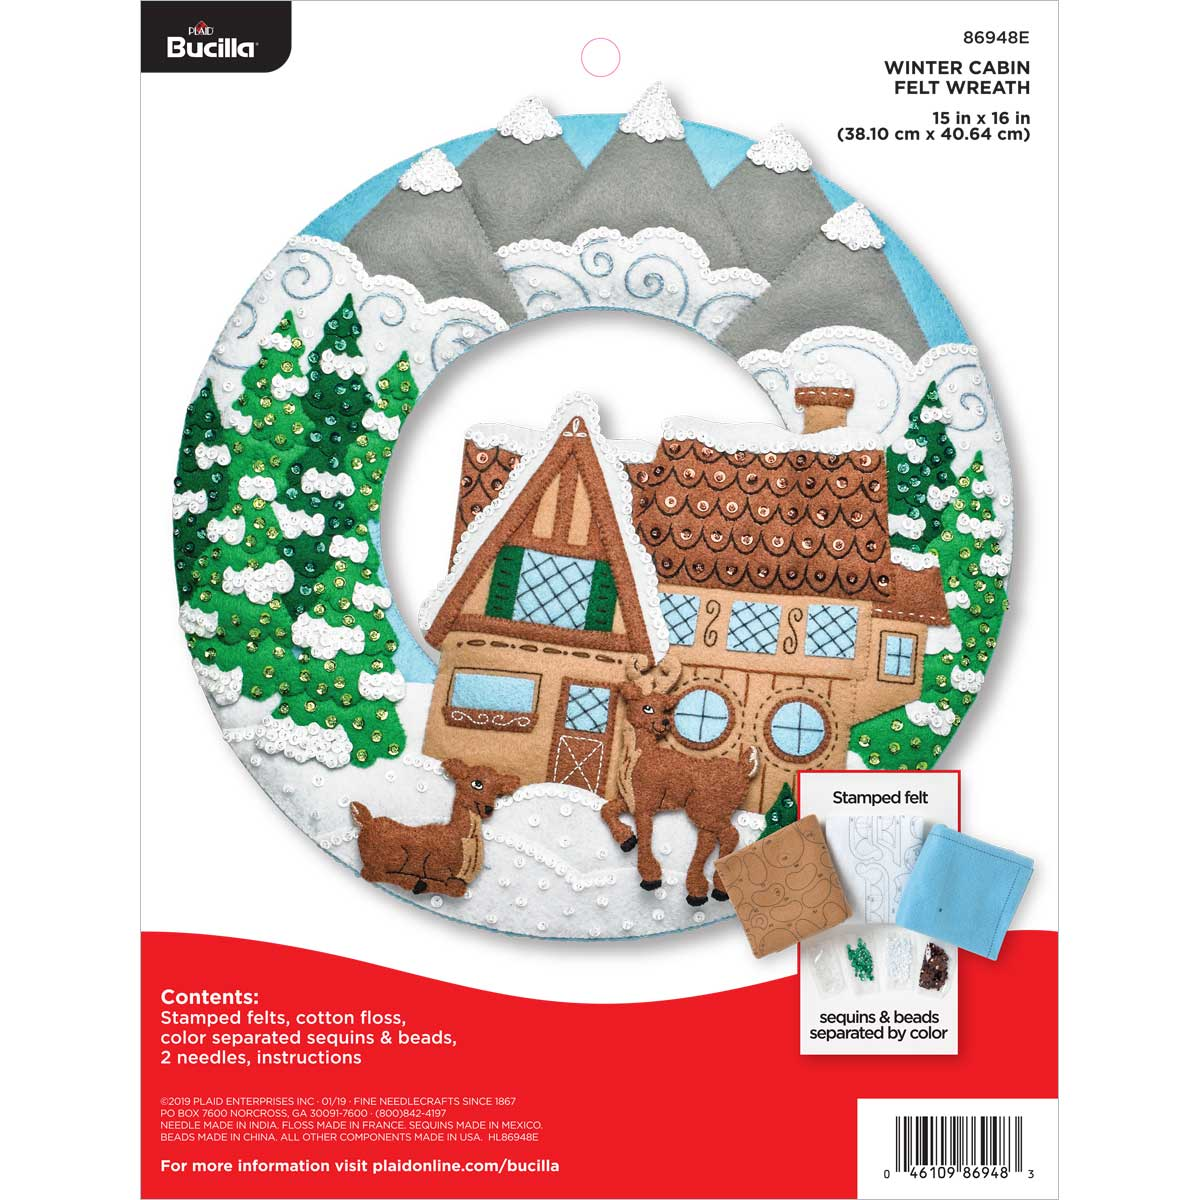 Bucilla ® Seasonal - Felt - Home Decor - Winter Cabin Wreath - 86948E